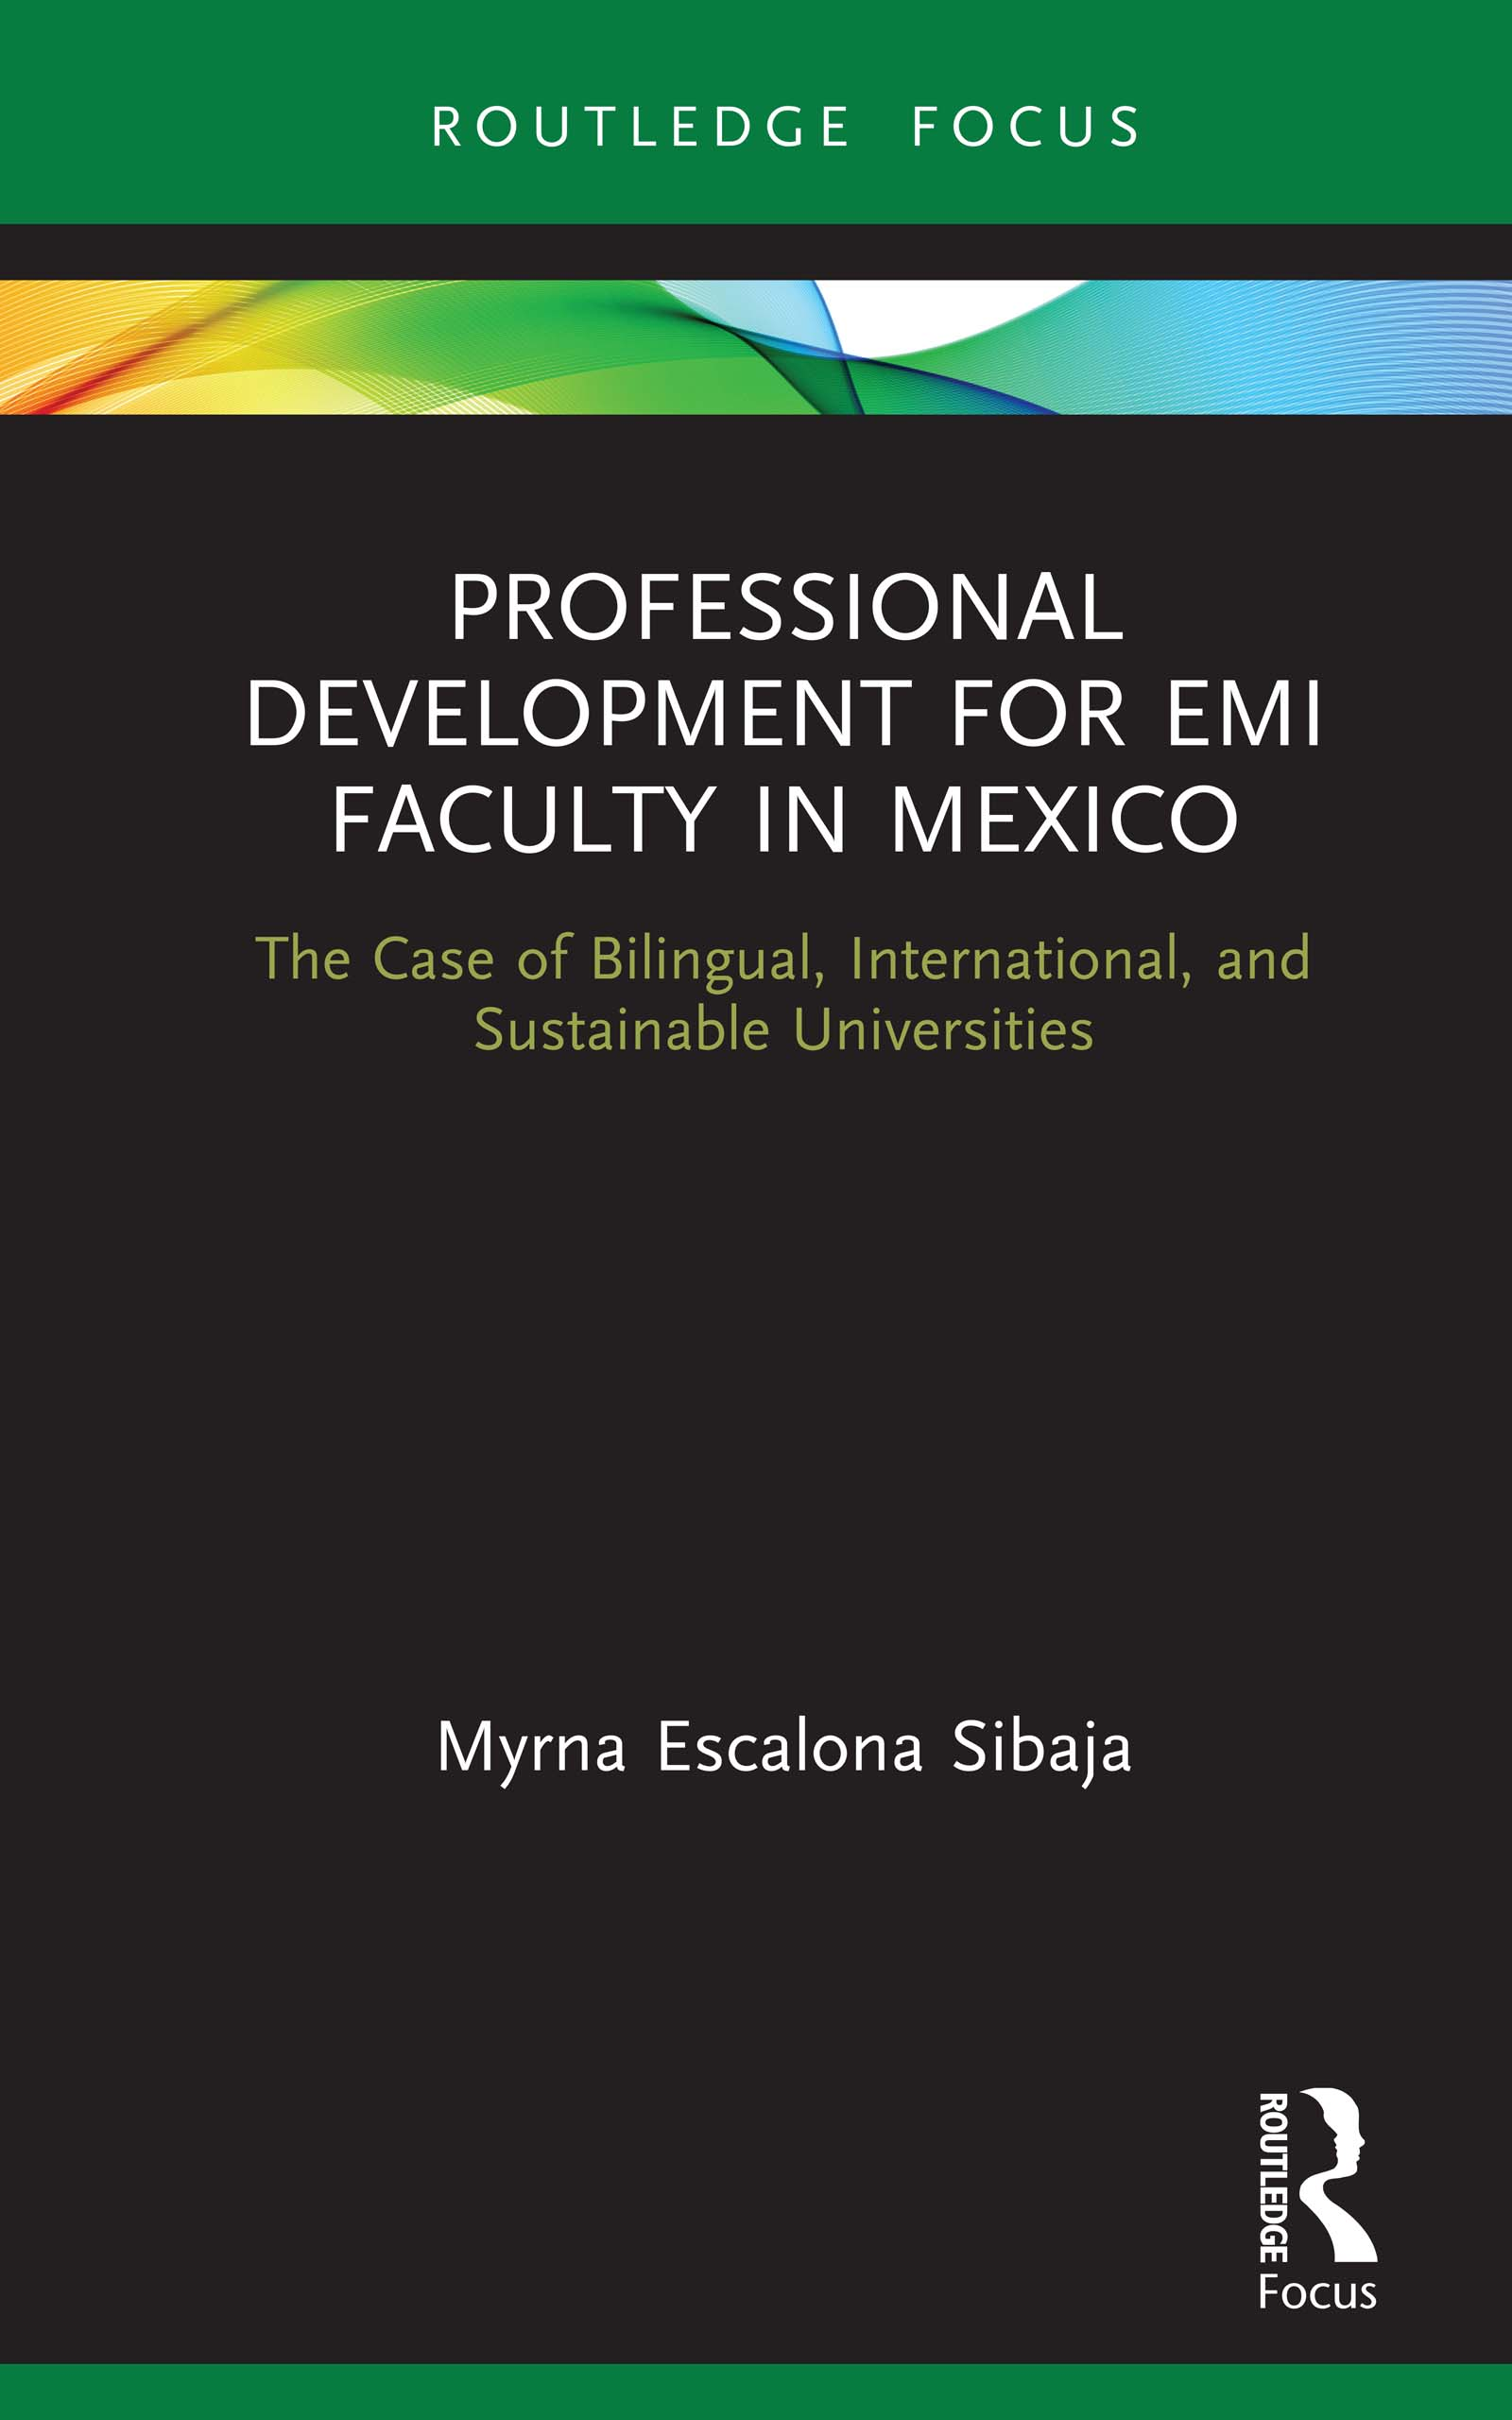 Professional Development for EMI Faculty in Mexico: The Case of Bilingual, International, and Sustainable Universities book cover